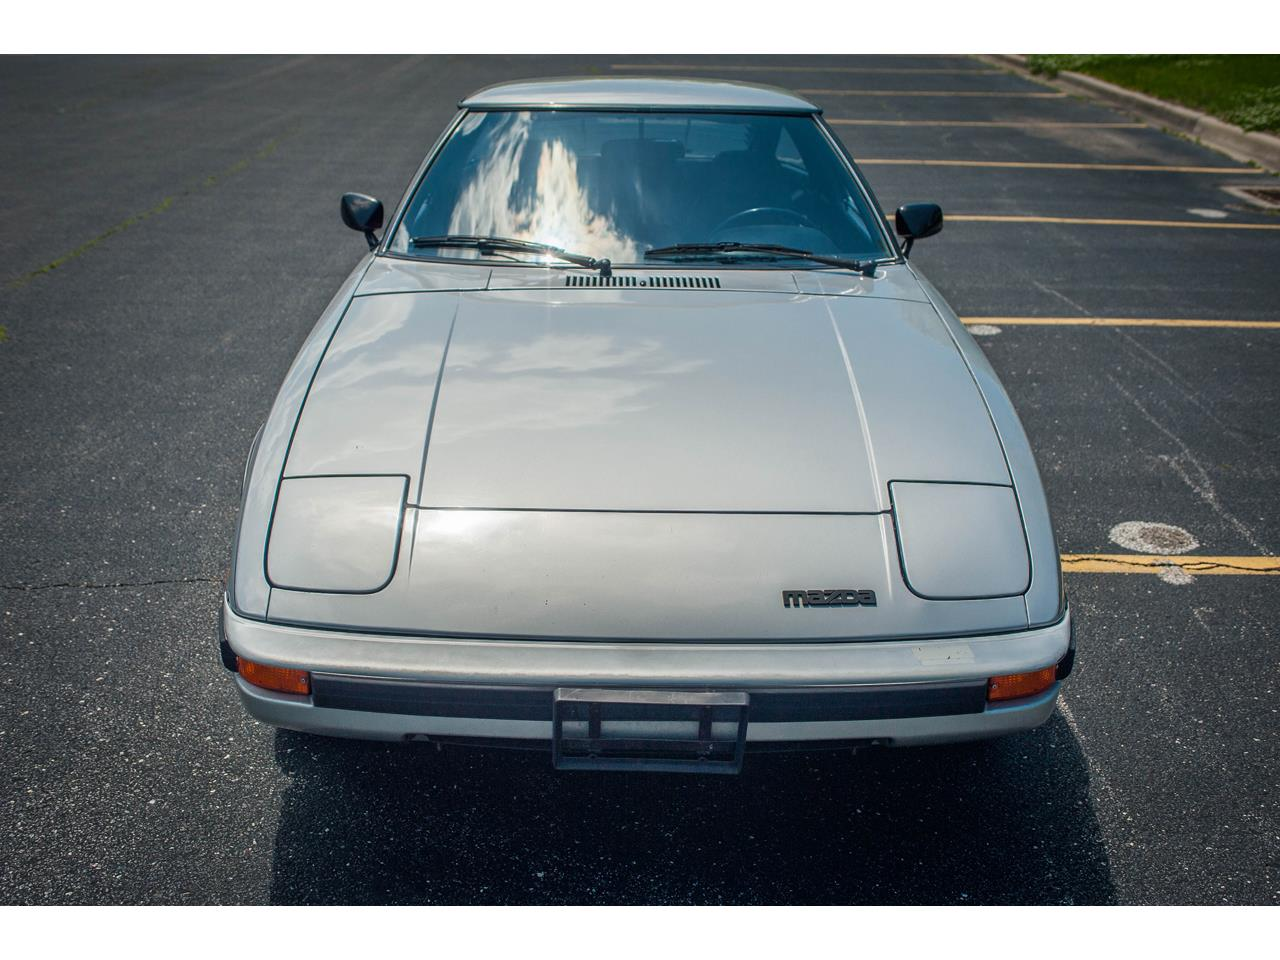 Large Picture of '82 Mazda RX-7 located in Illinois Offered by Gateway Classic Cars - St. Louis - QB9V